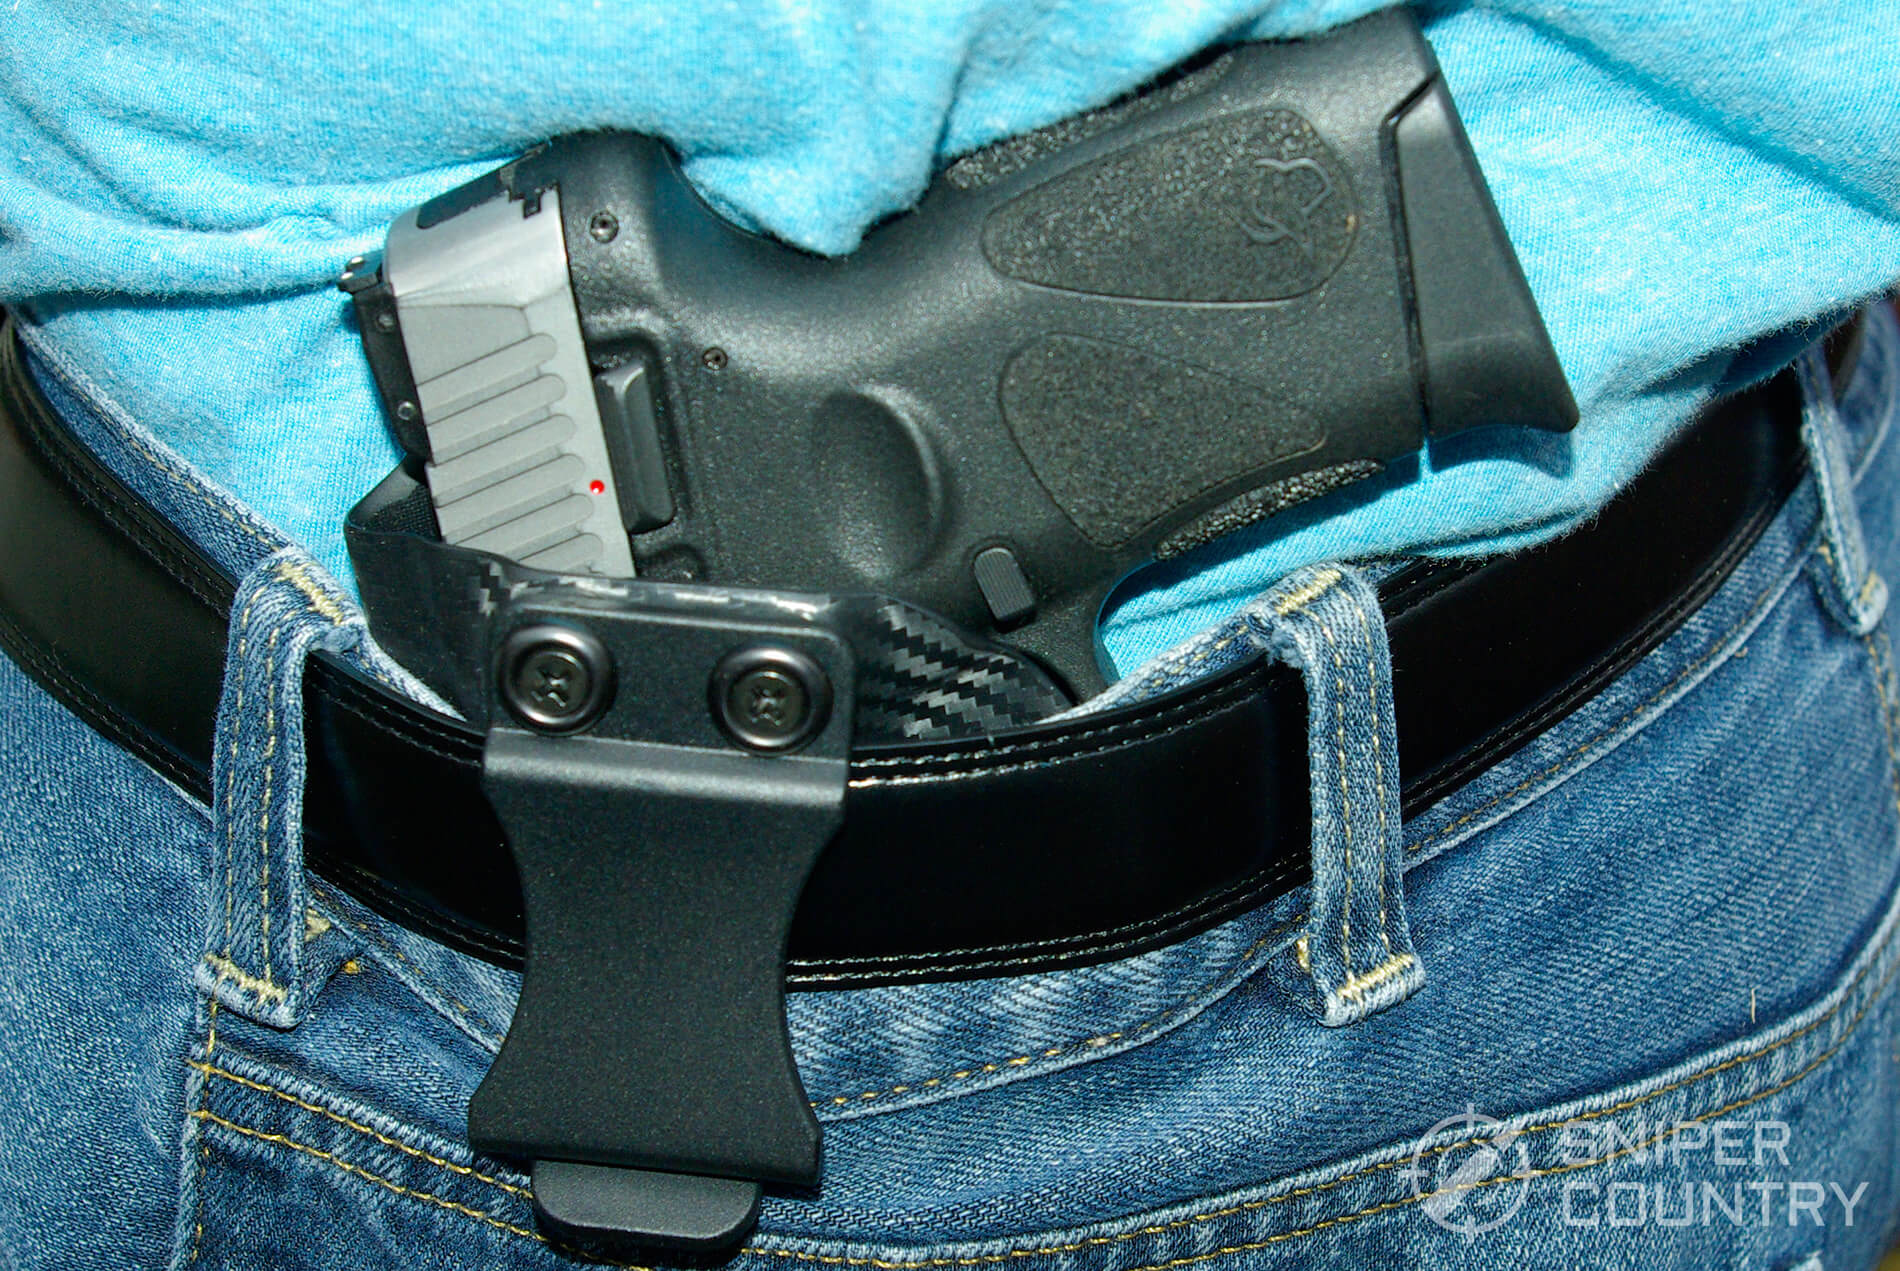 Concealment Exp G2C IWB gun-at-8-o-clock-IWB